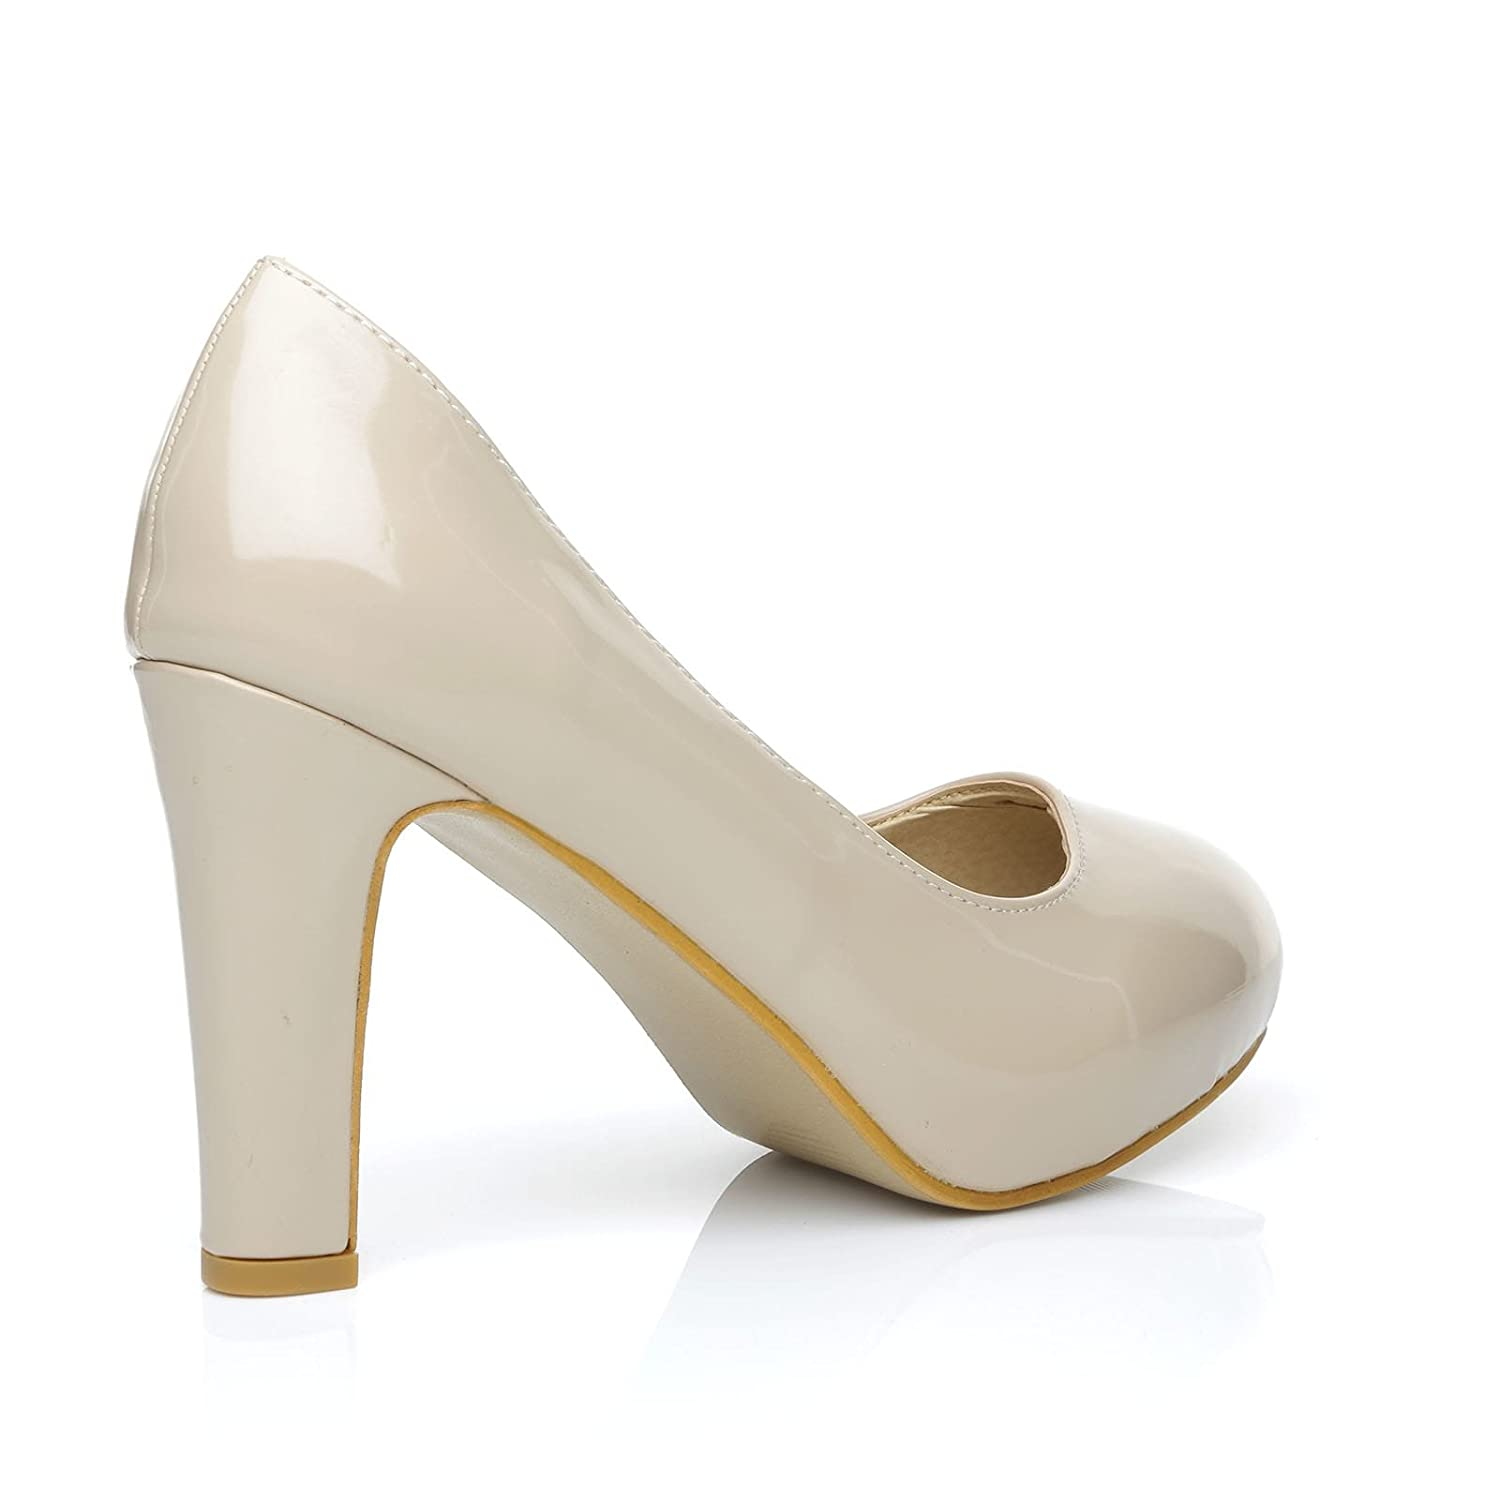 5bccb25a1d6 Love Nude Patent PU Leather Slim-Block High Heel Platform Court Shoes   Amazon.co.uk  Shoes   Bags